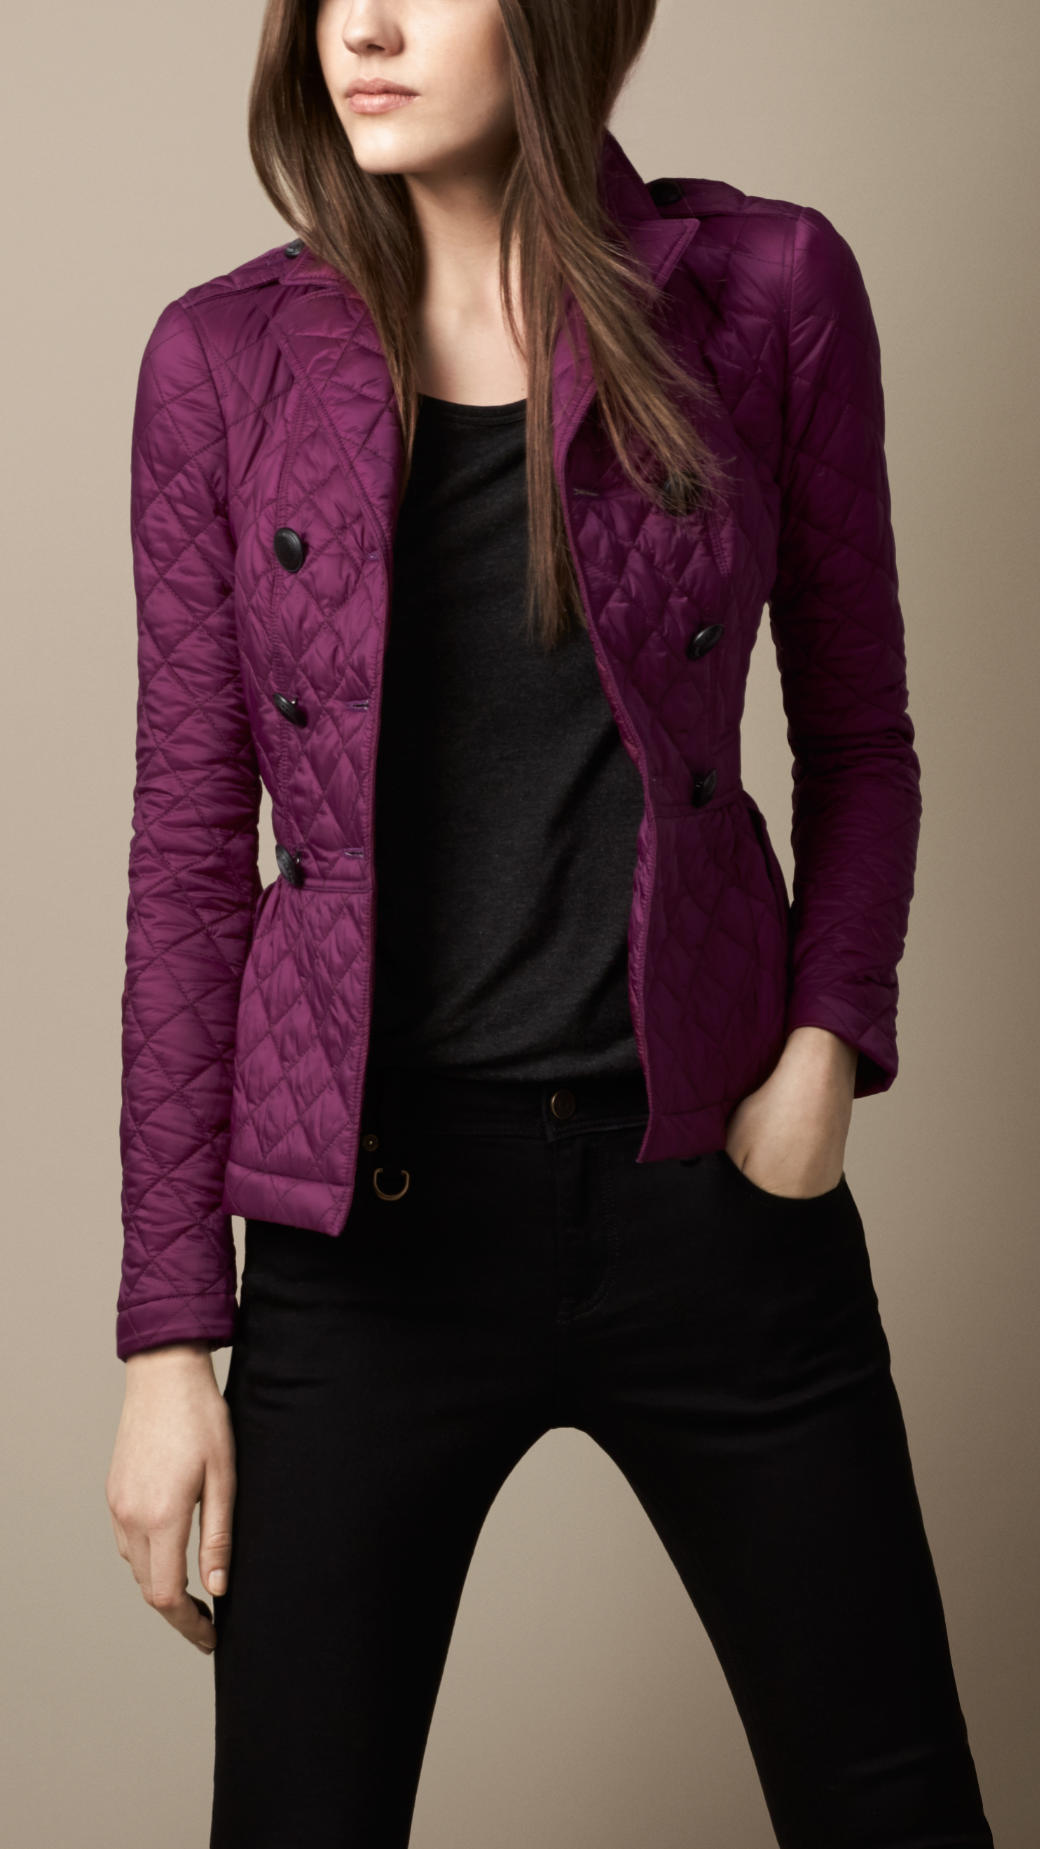 Burberry Quilted Peplum Jacket in Purple | Lyst : burberry purple quilted jacket - Adamdwight.com